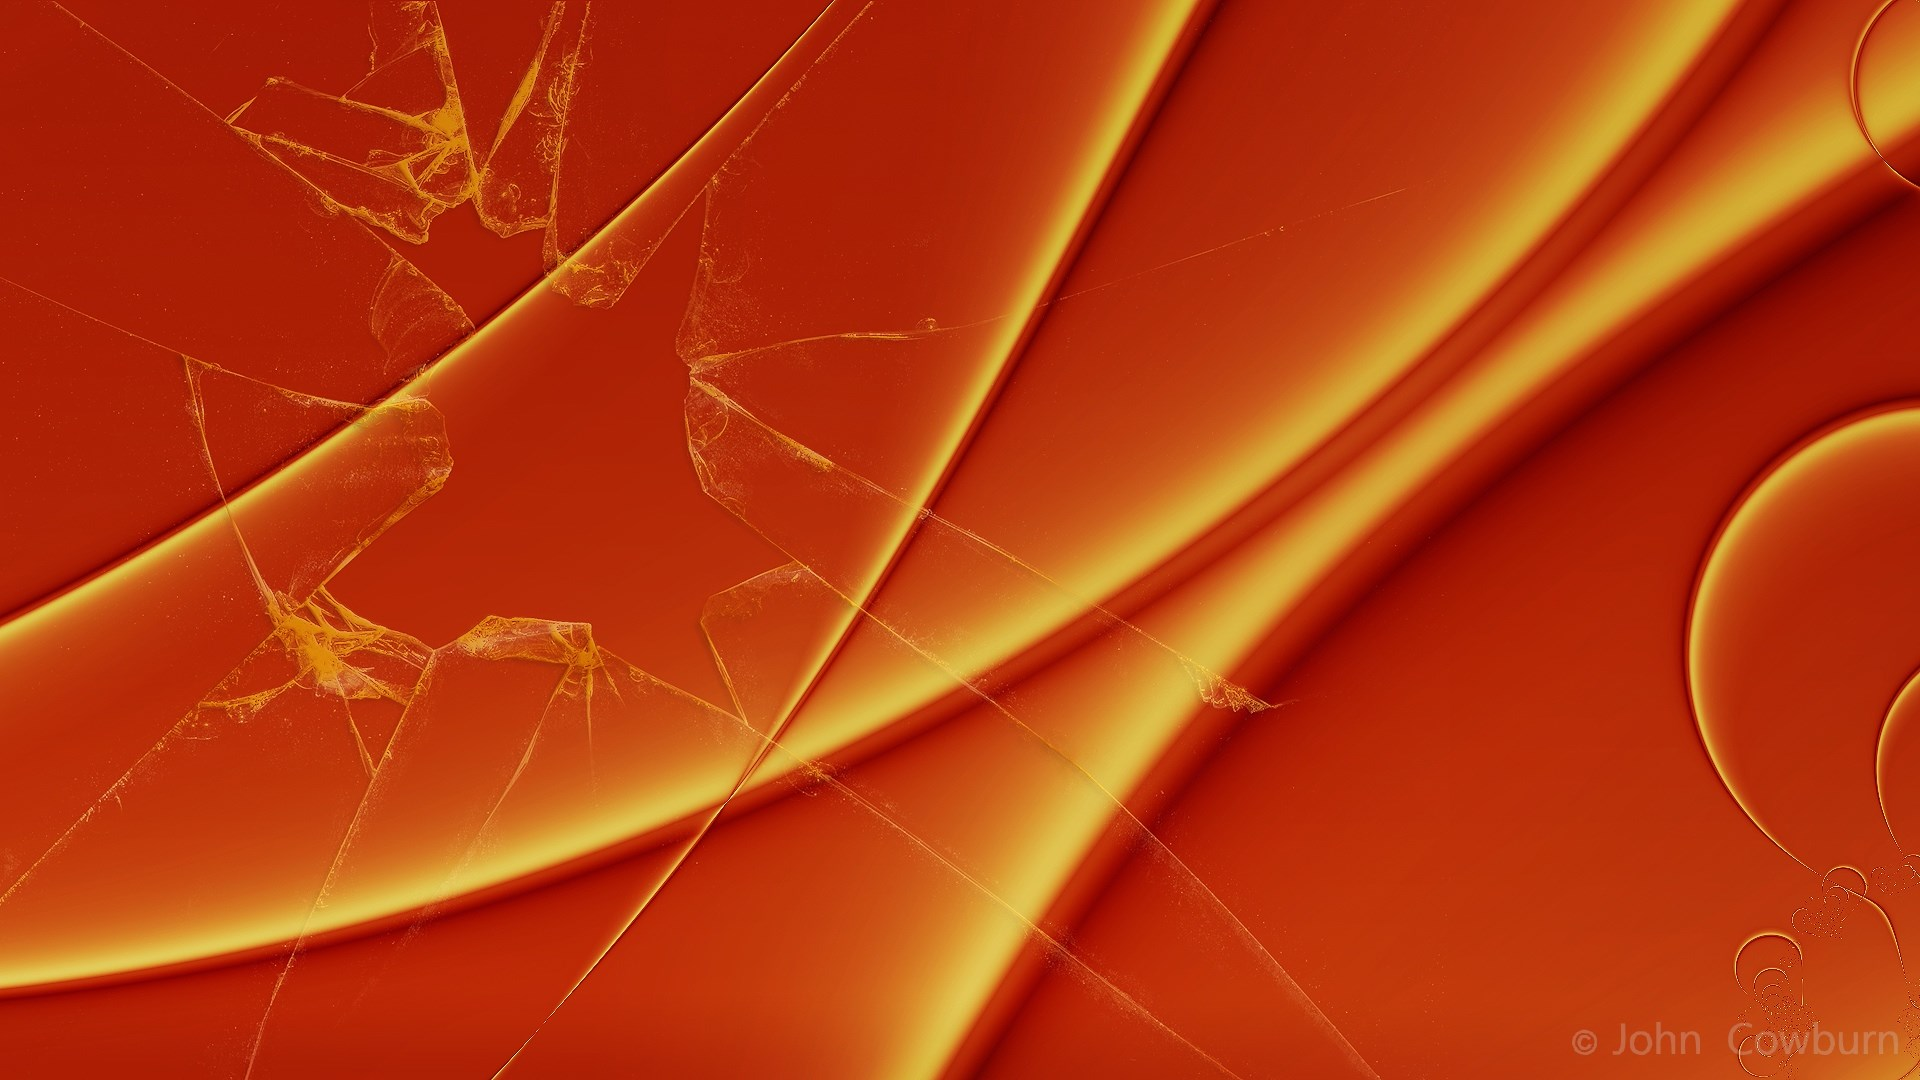 broken-glass-image-wall-pic-1920x1080-wallpaper-wp3803450